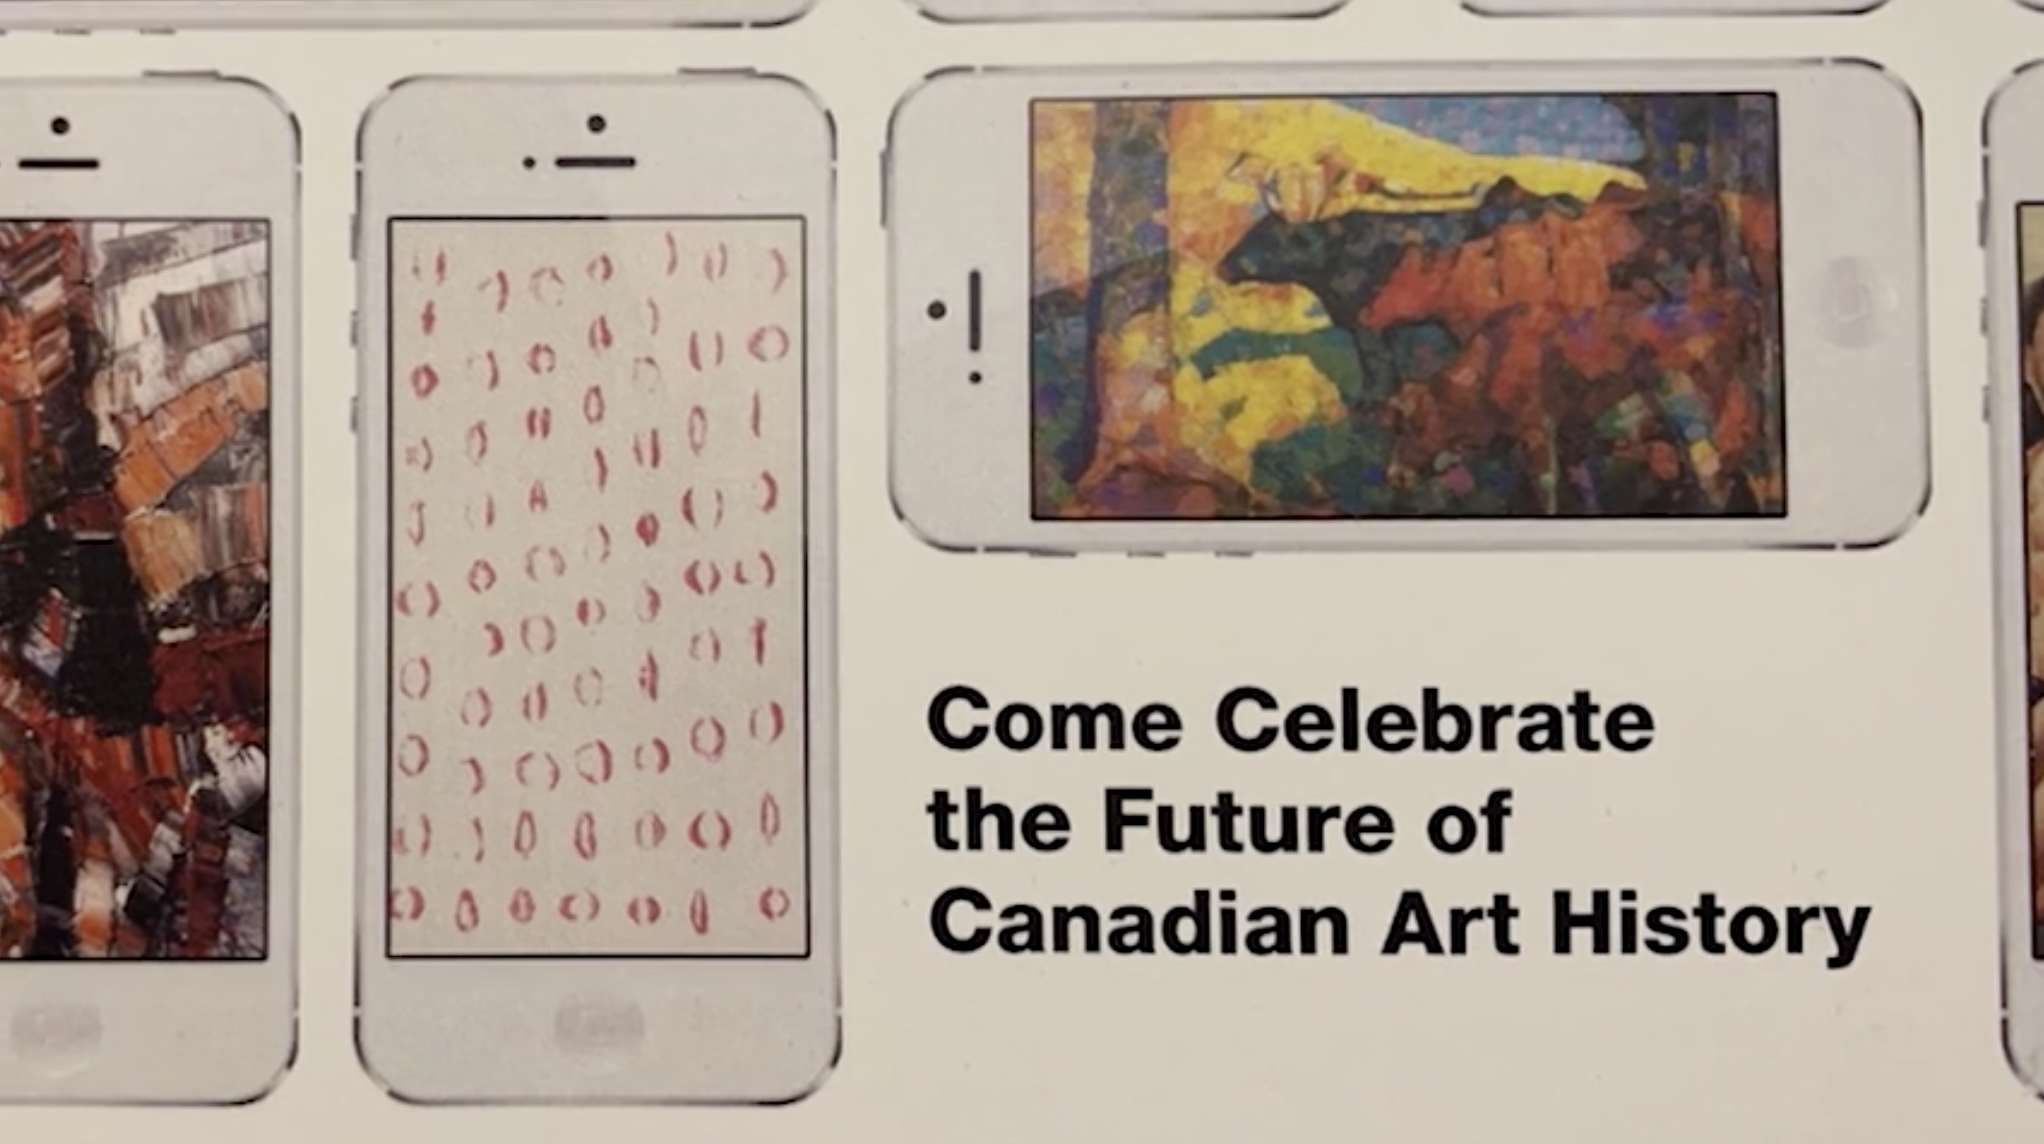 sara-angel-cbc-launch-of-the-art-canada-institute-future-of-canadian-art-history